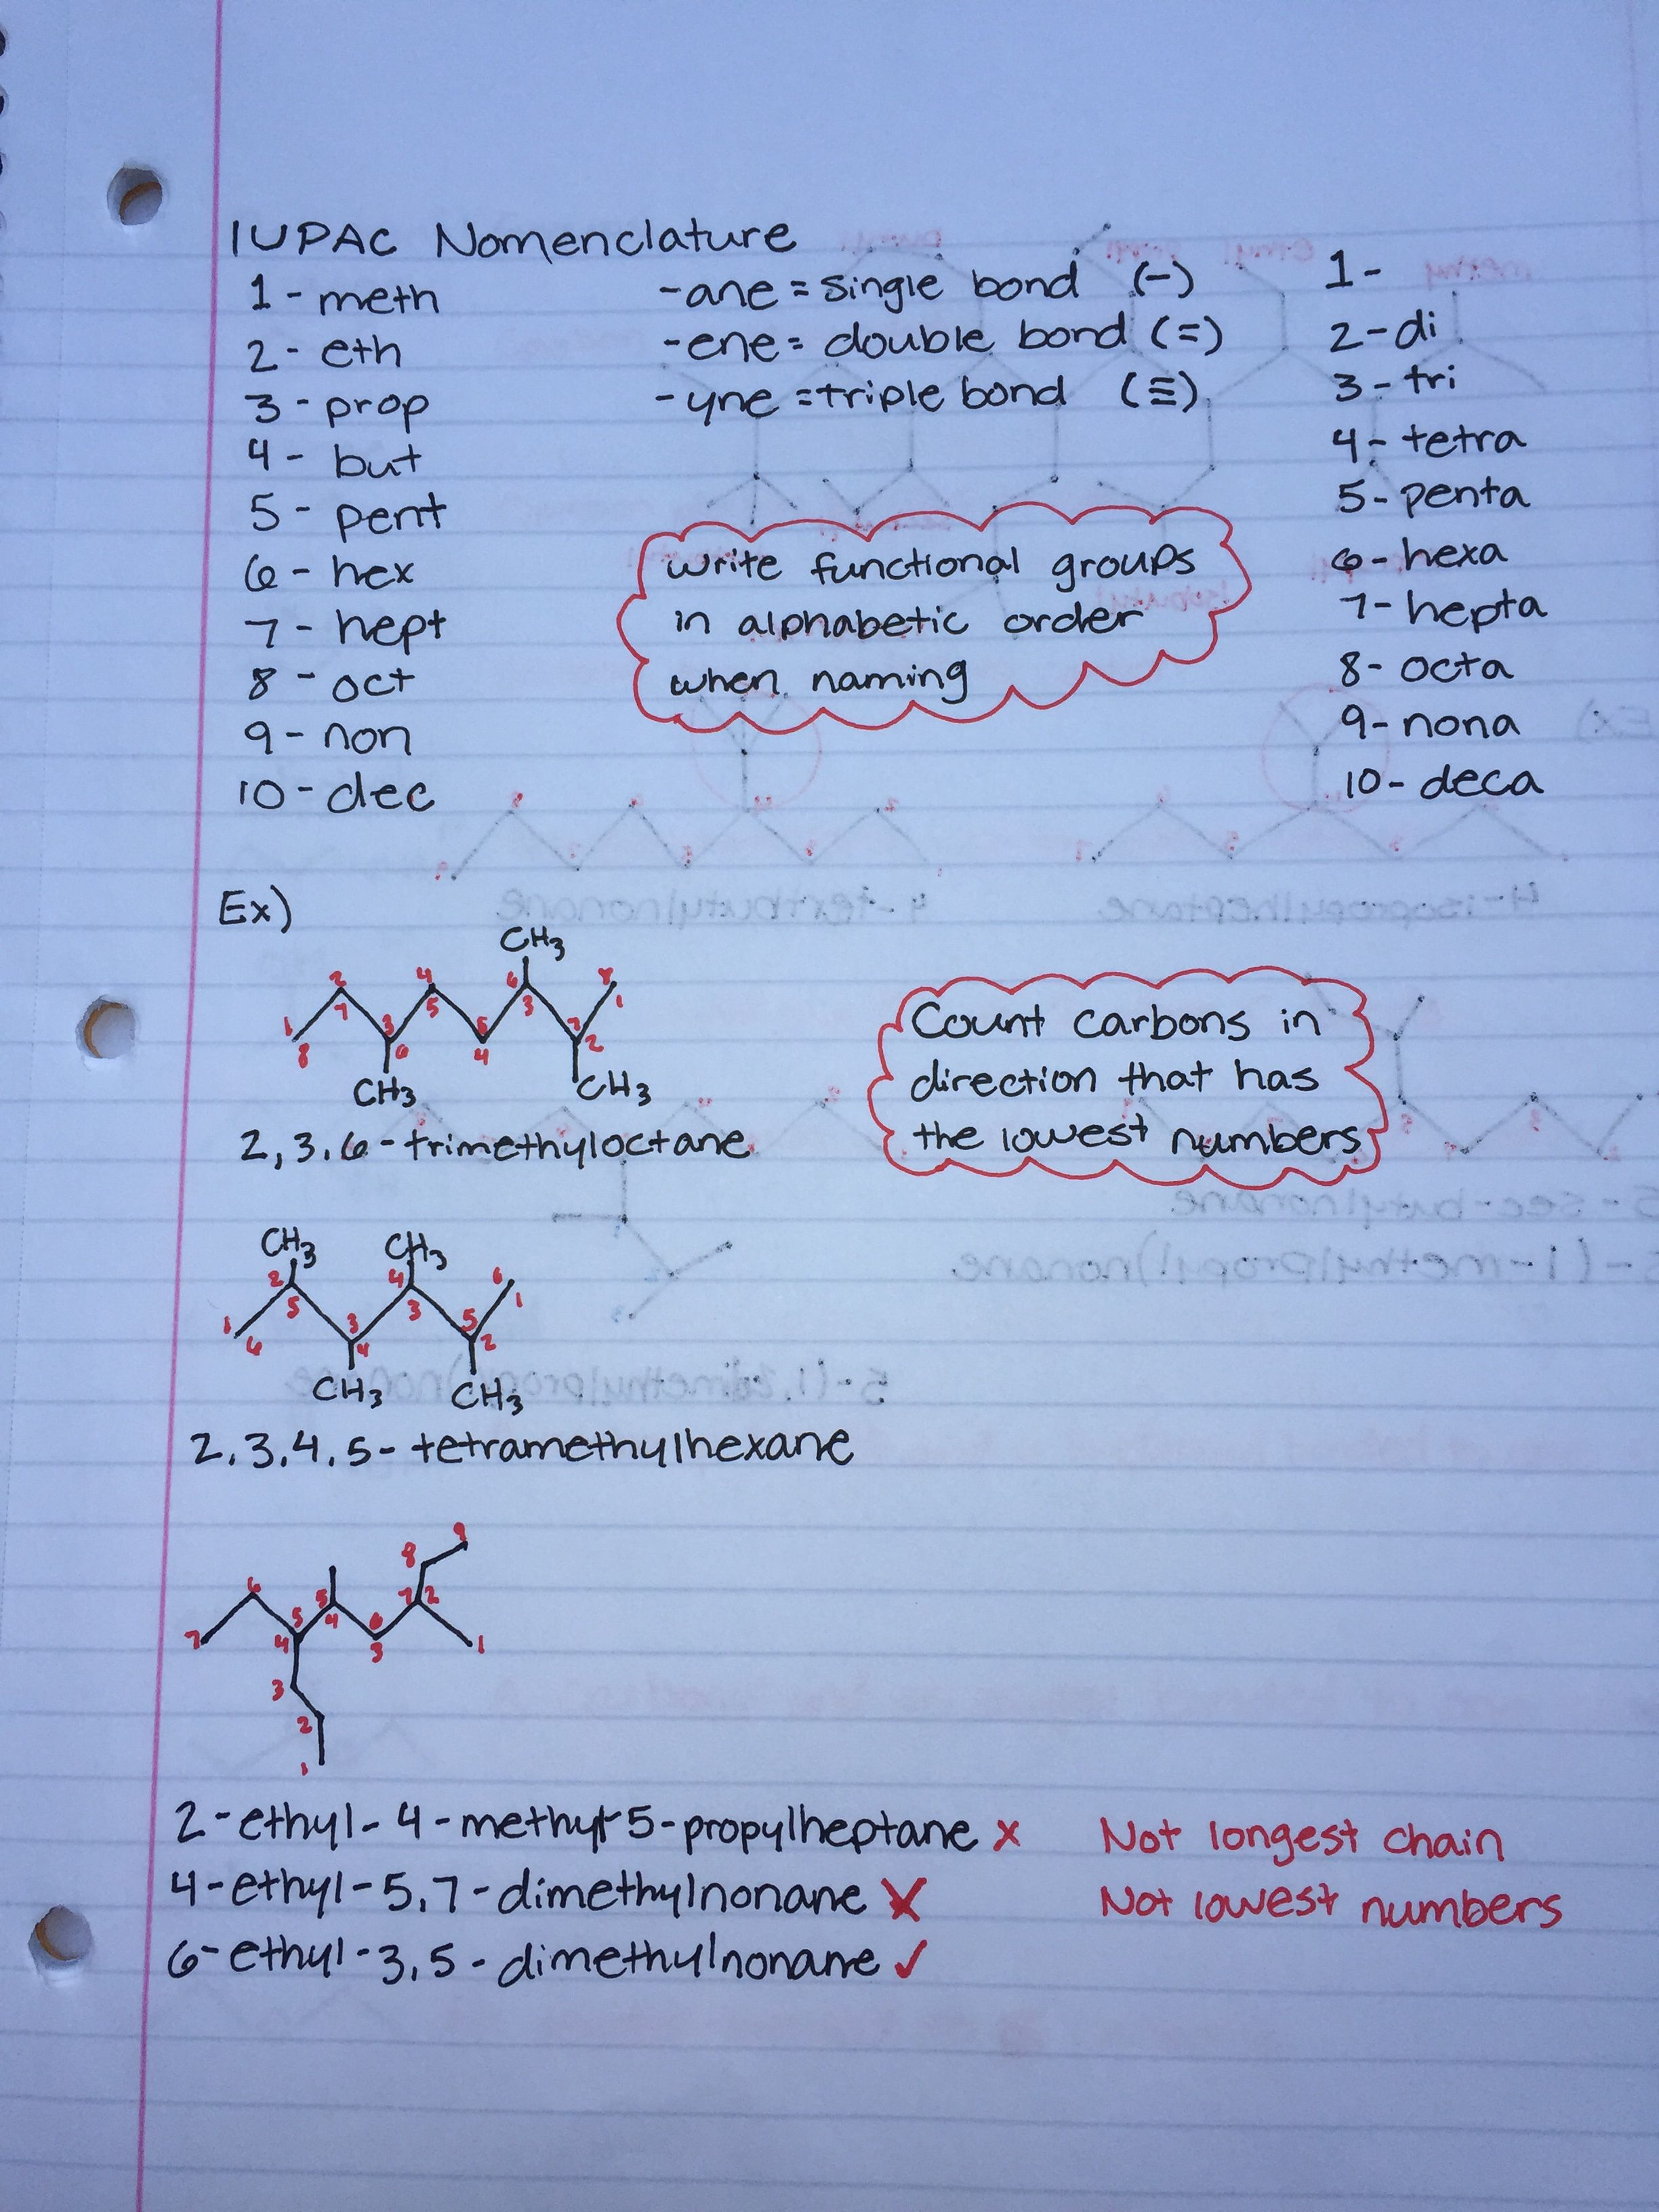 IUPAC Nomenclature Organic Chemistry for naming compounds #chemistry